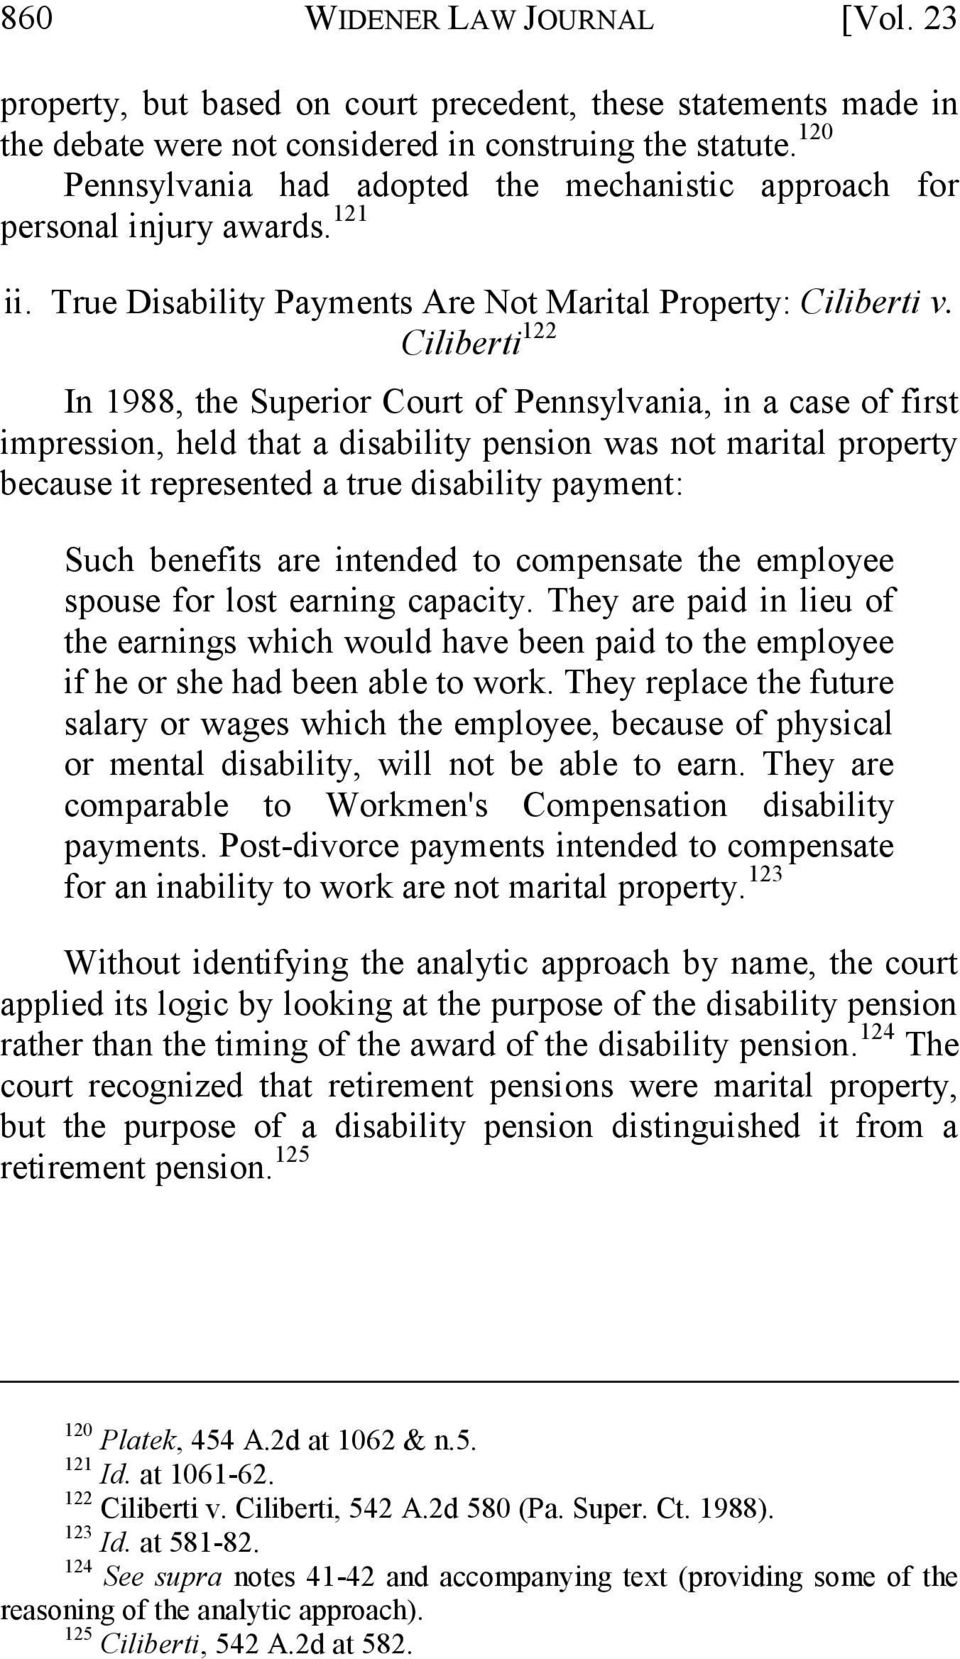 Ciliberti 122 In 1988, the Superior Court of Pennsylvania, in a case of first impression, held that a disability pension was not marital property because it represented a true disability payment: